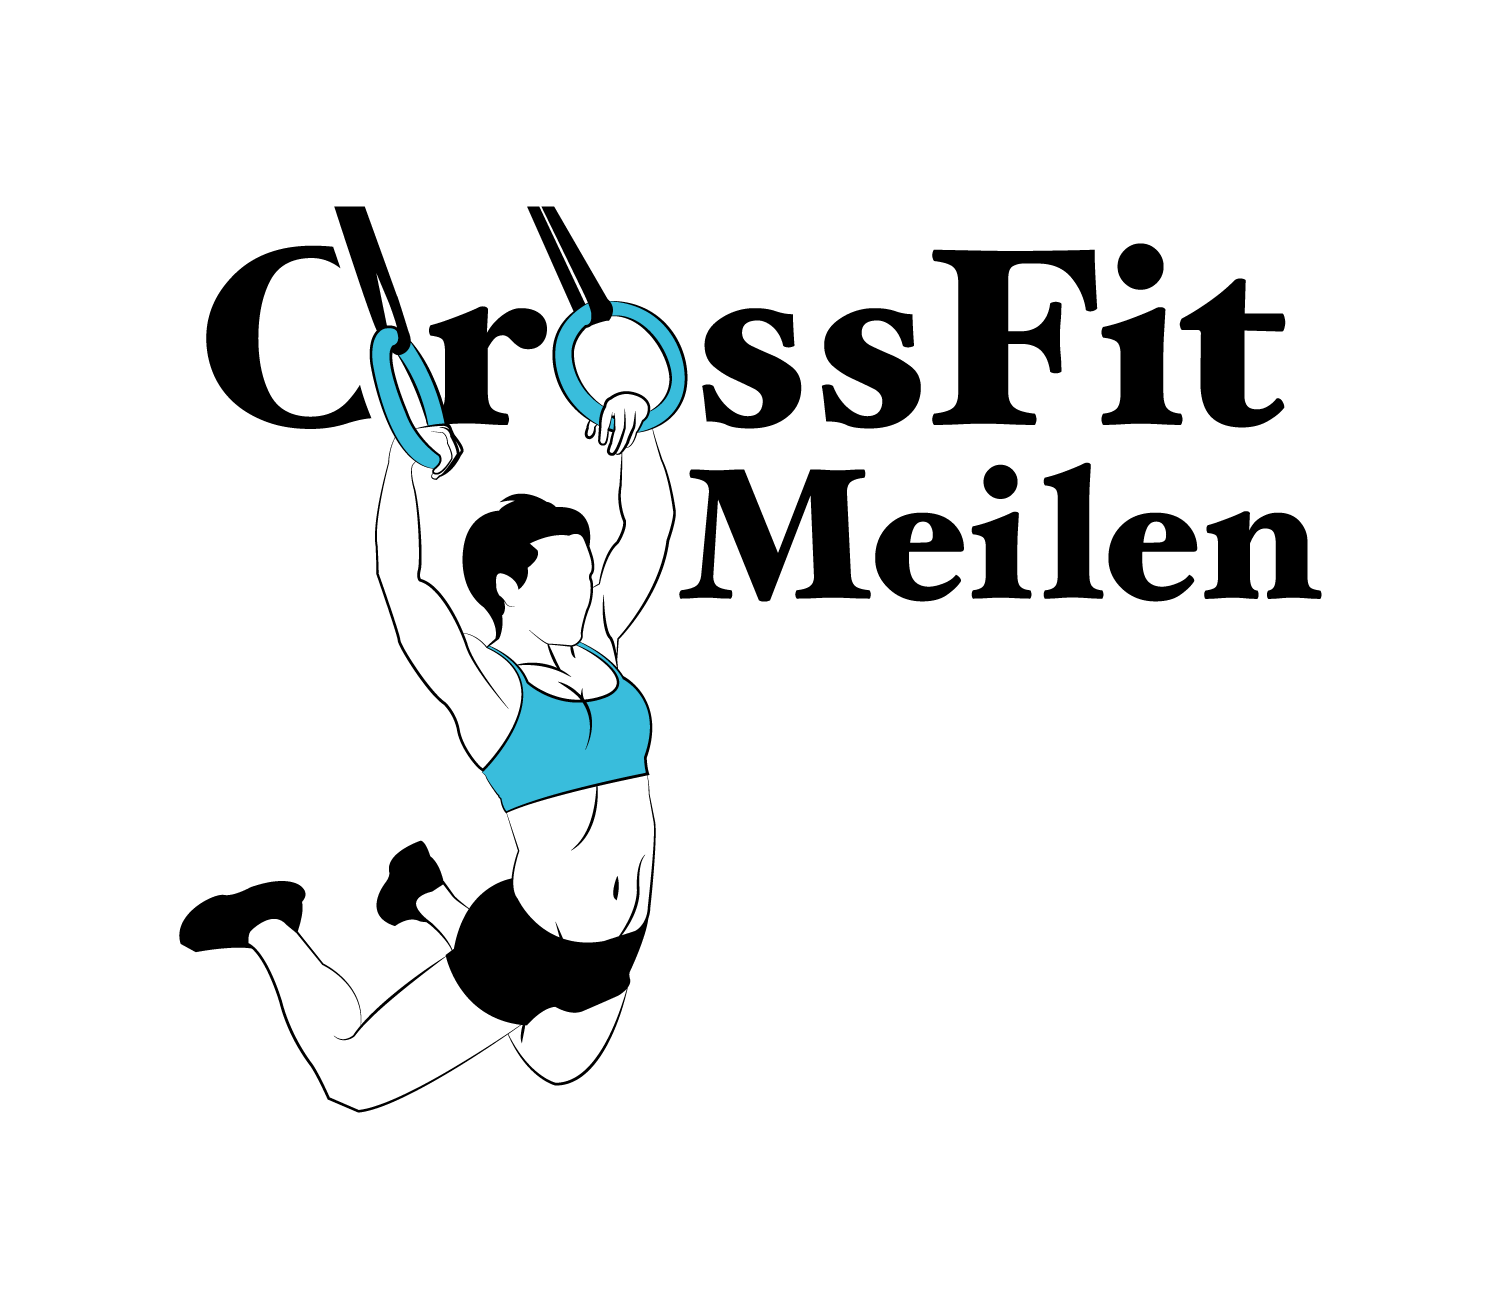 Fun and sportive Logo for CrossFit Studio with a brother